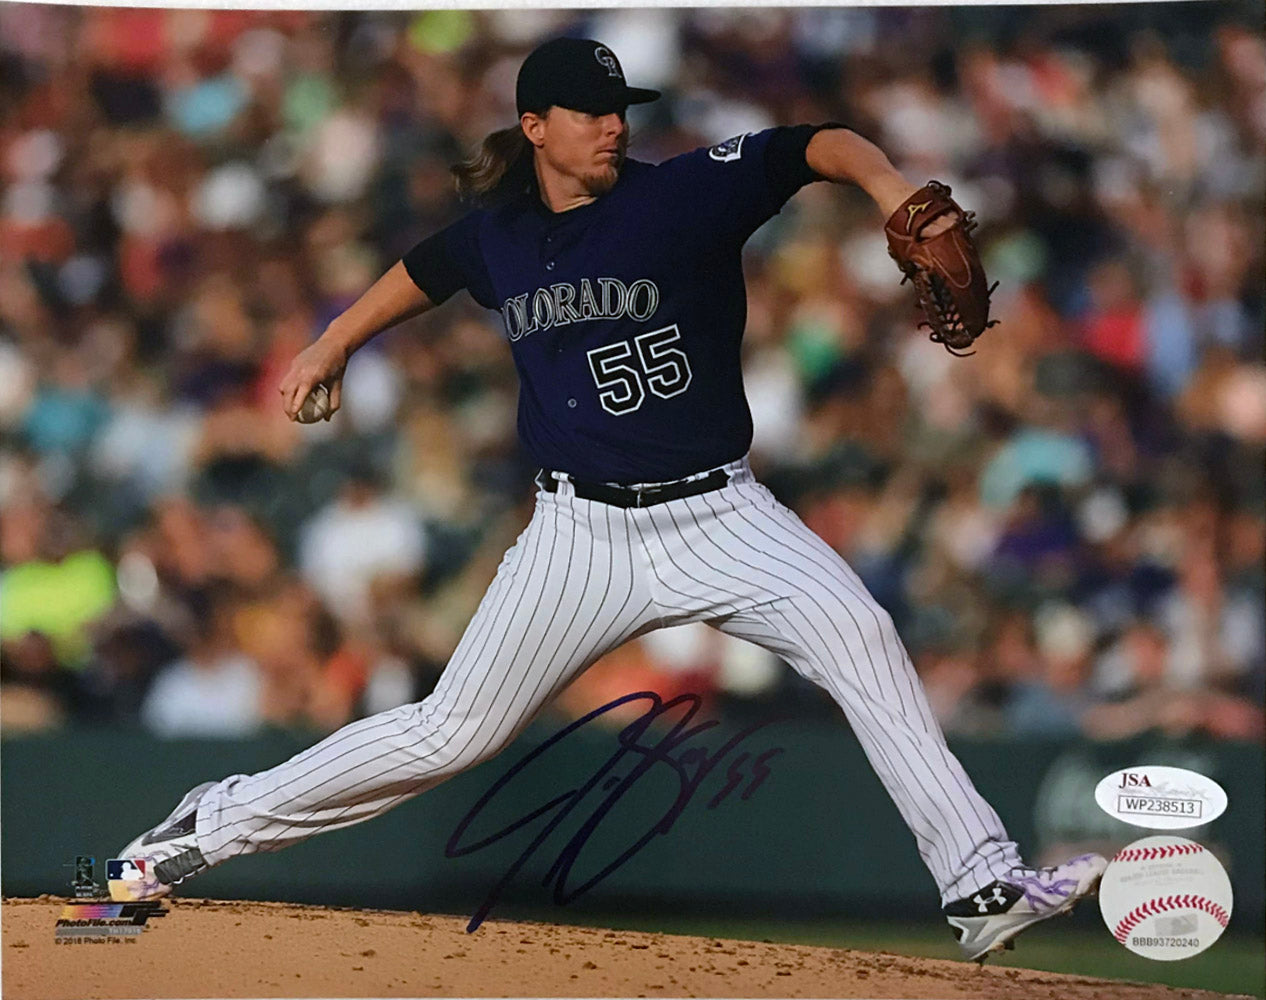 Jon Gray Signed 8x10 Photo - Purple Jersey (Blowout)